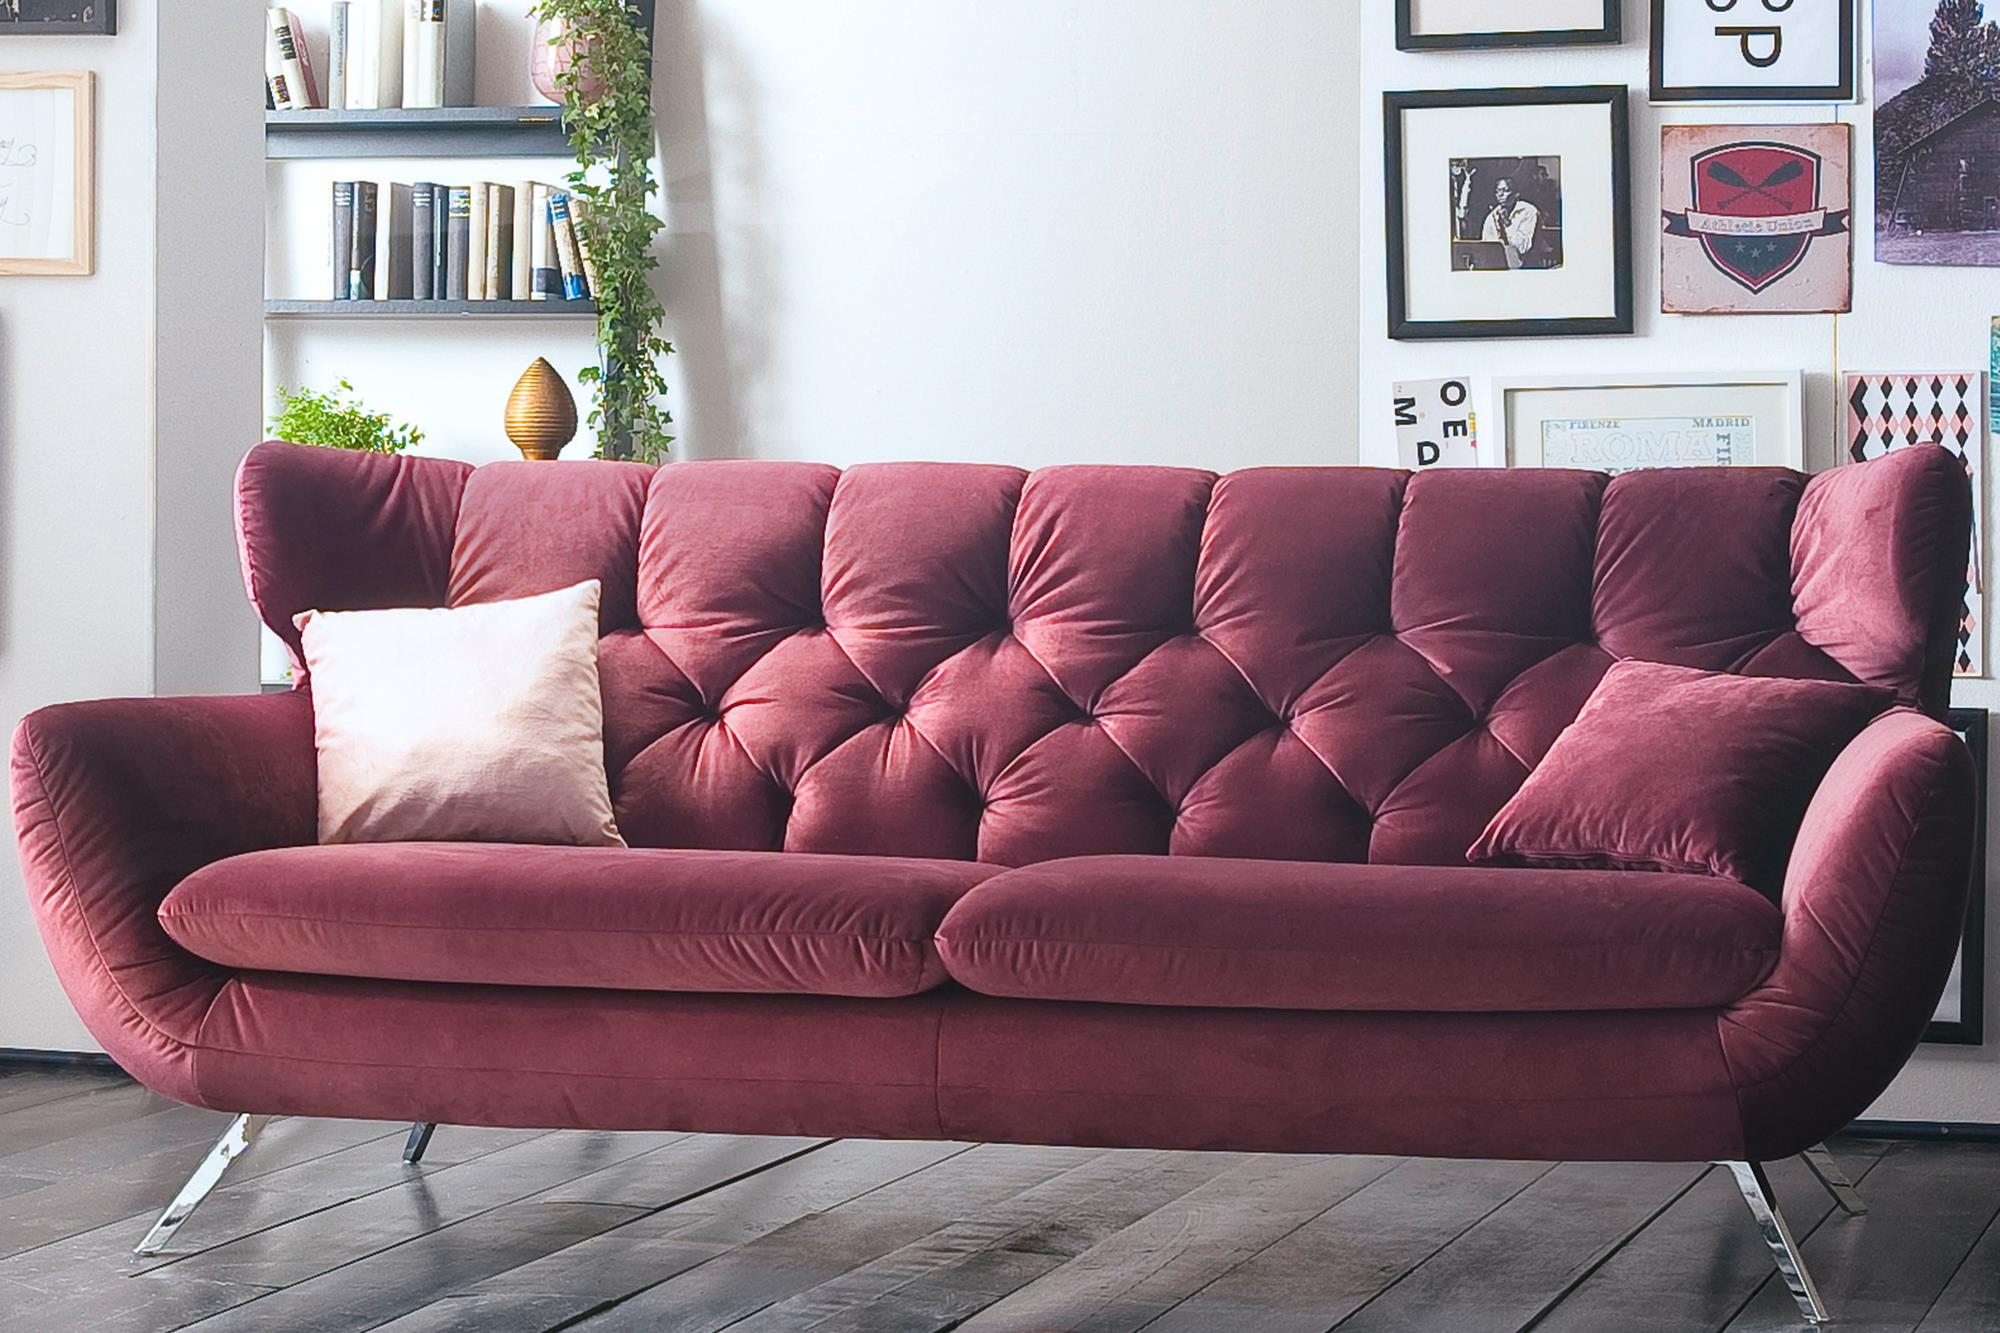 Sofa Candy Candy Sofa Sixty